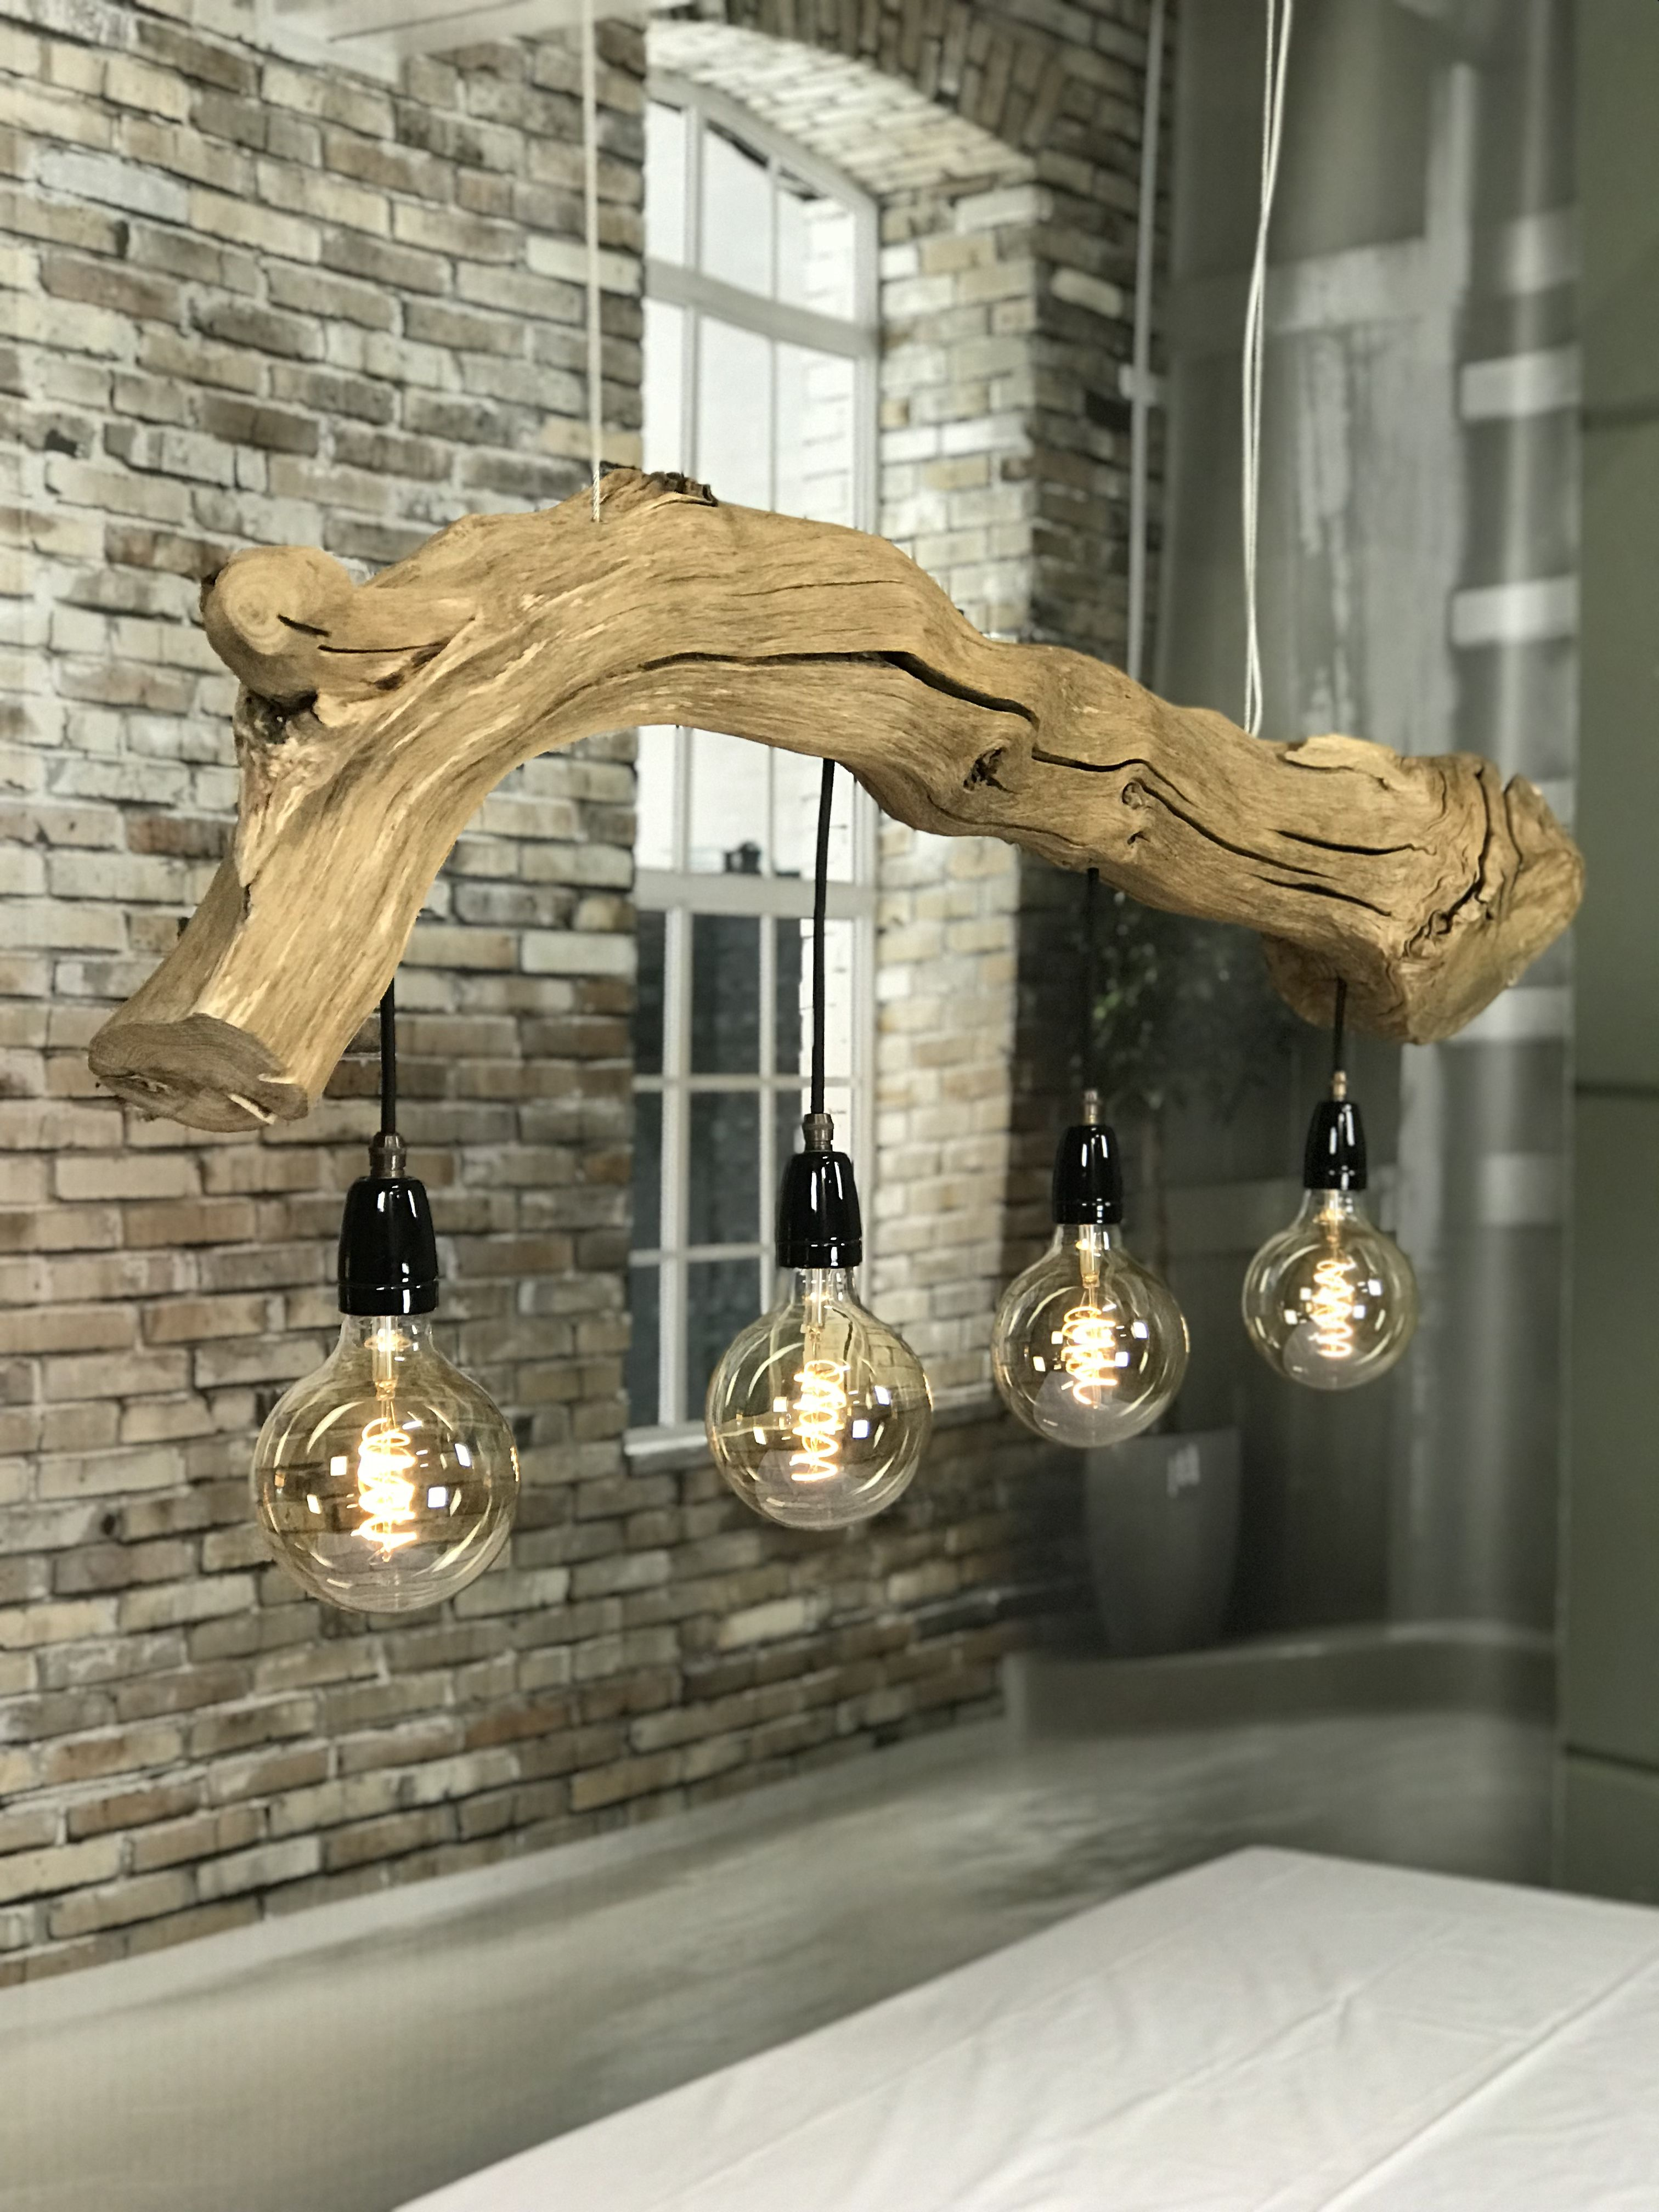 Trunk Ceiling Lamp With Led Vintage Lamps Natural And Industrial - Woonkamer Lamp Vintage